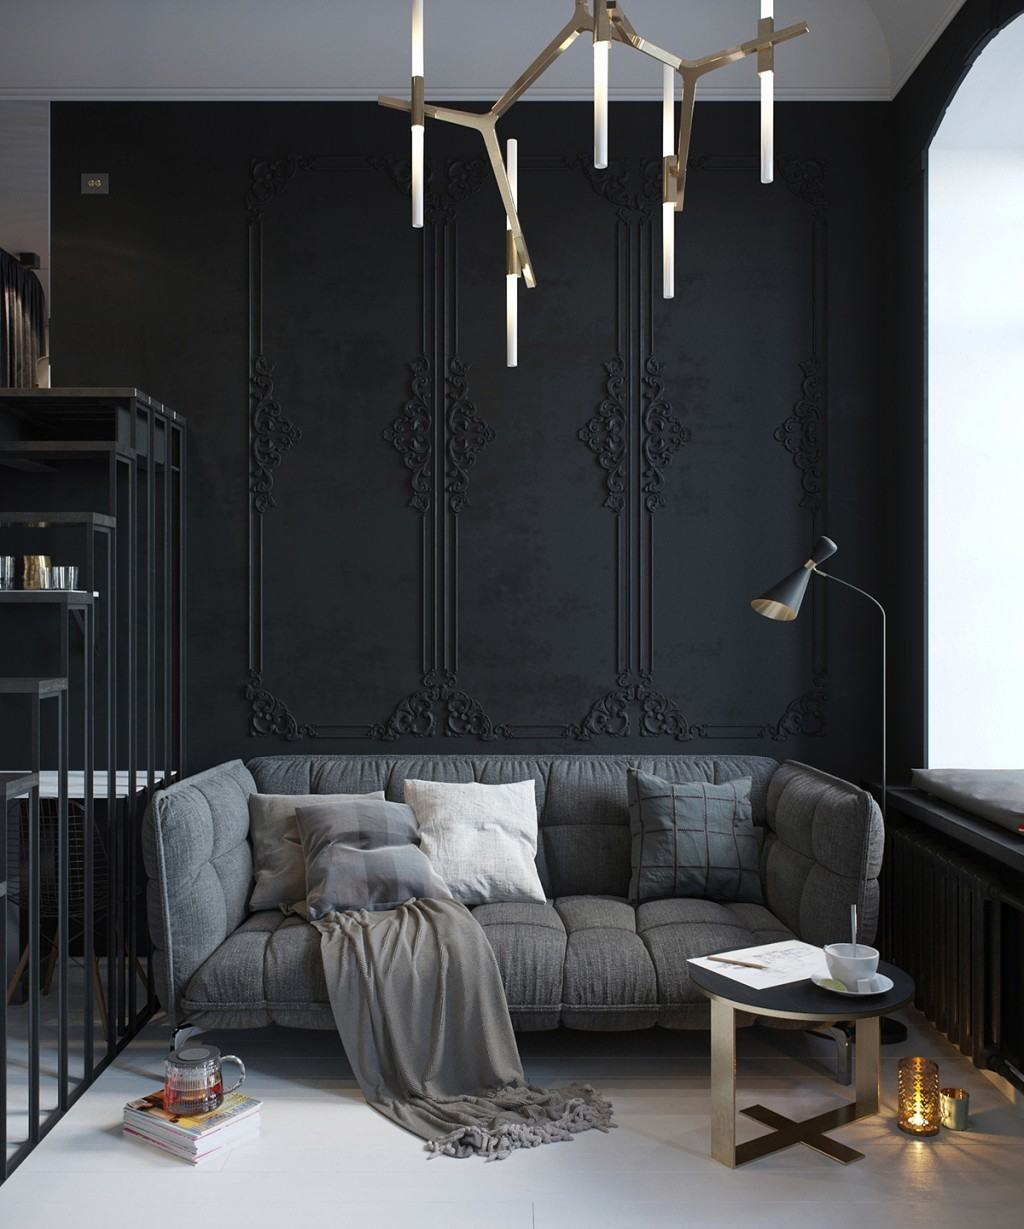 Texture Walls Design 28 Ideas For Black Wall Interiors How To Style Them